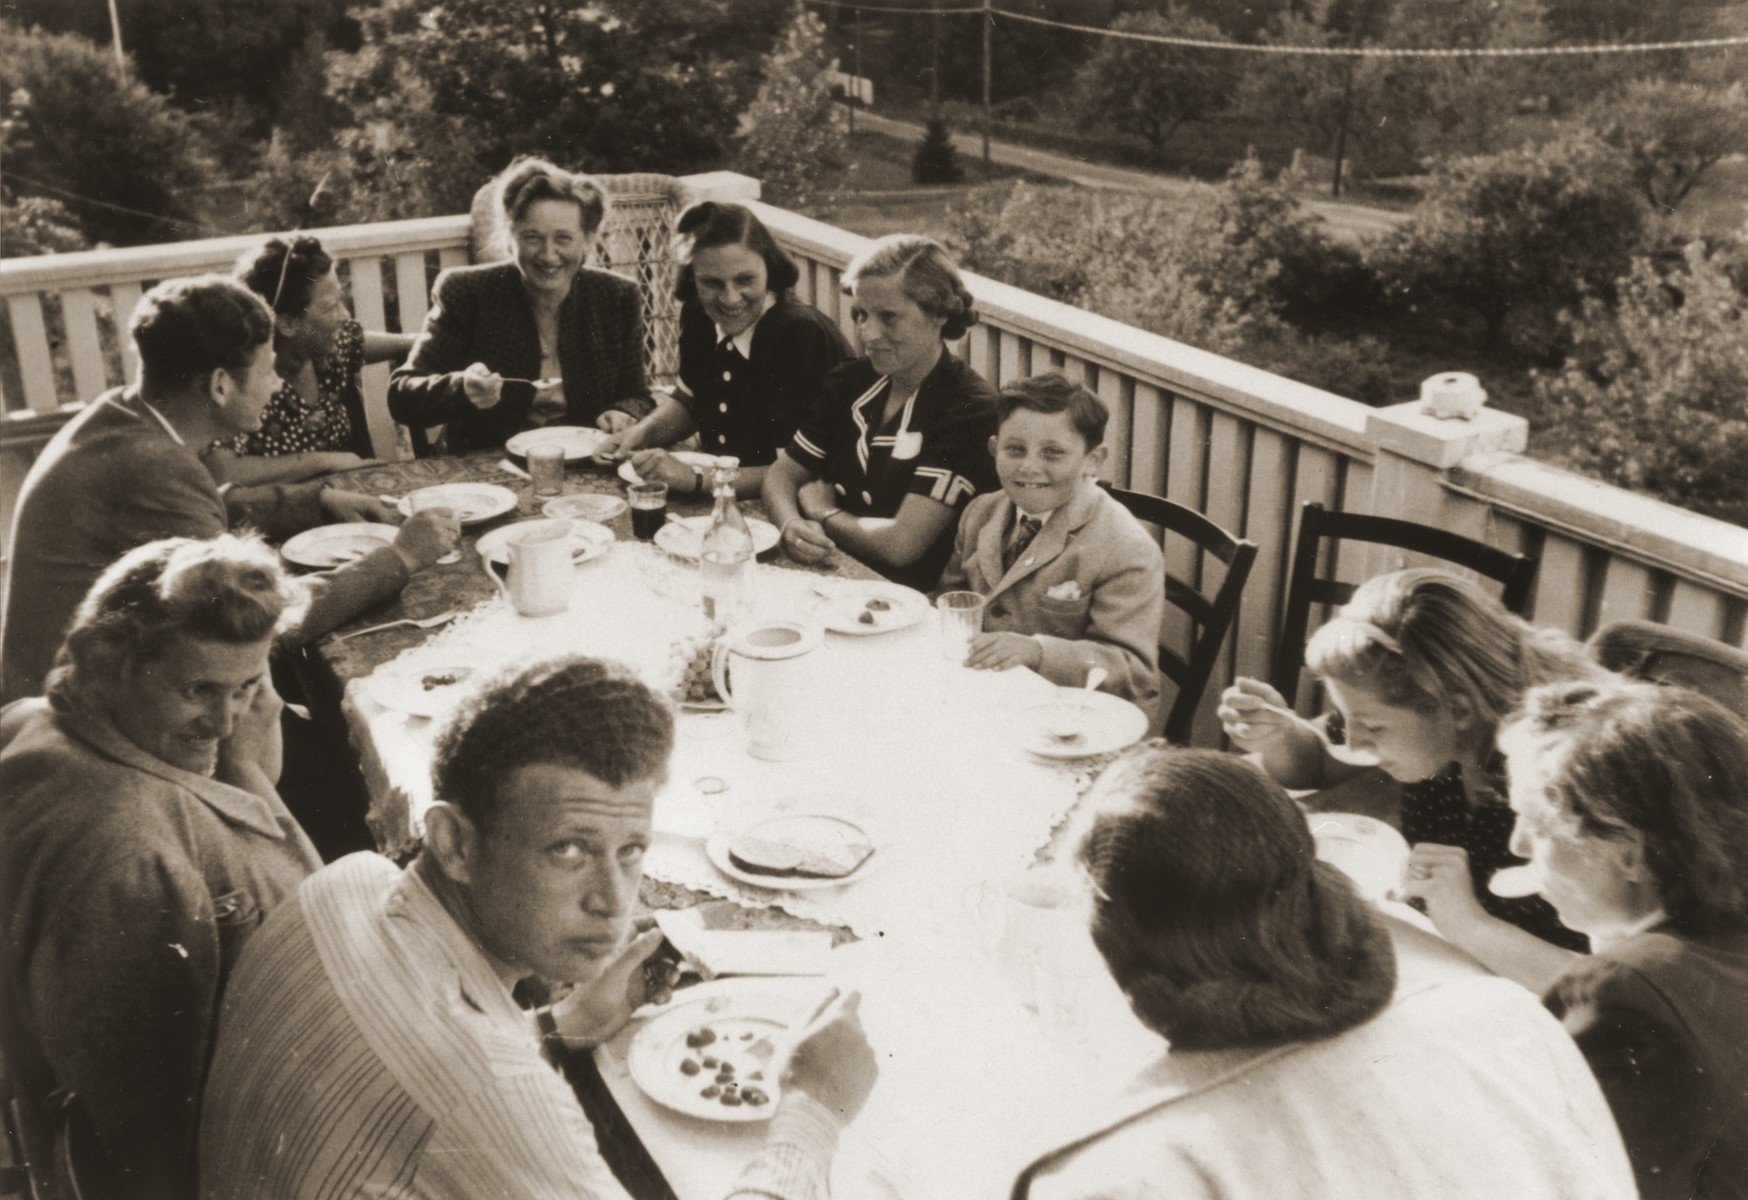 A group of Jewish DPs living in Sweden have dinner on a balcony.